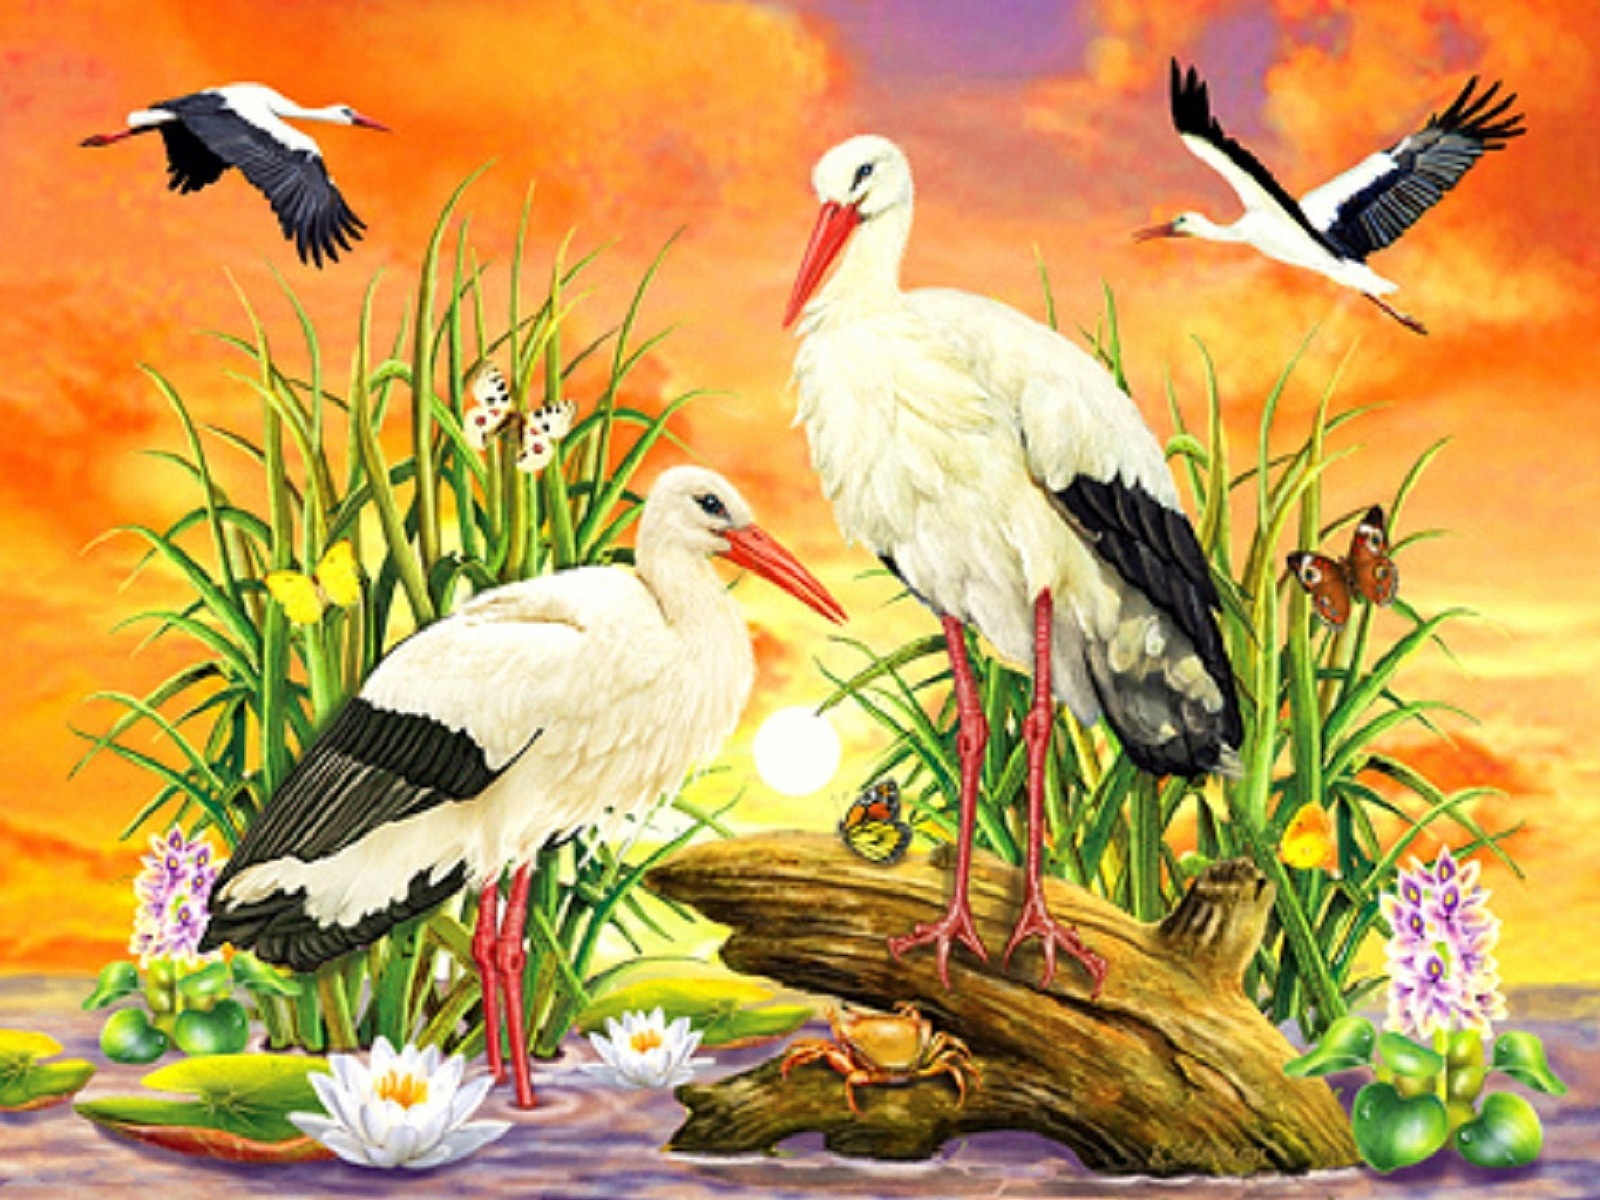 Cute Animated Wallpapers For Mobile Gif Jungle Animals Seventeen Wallpapers Jungle Animals